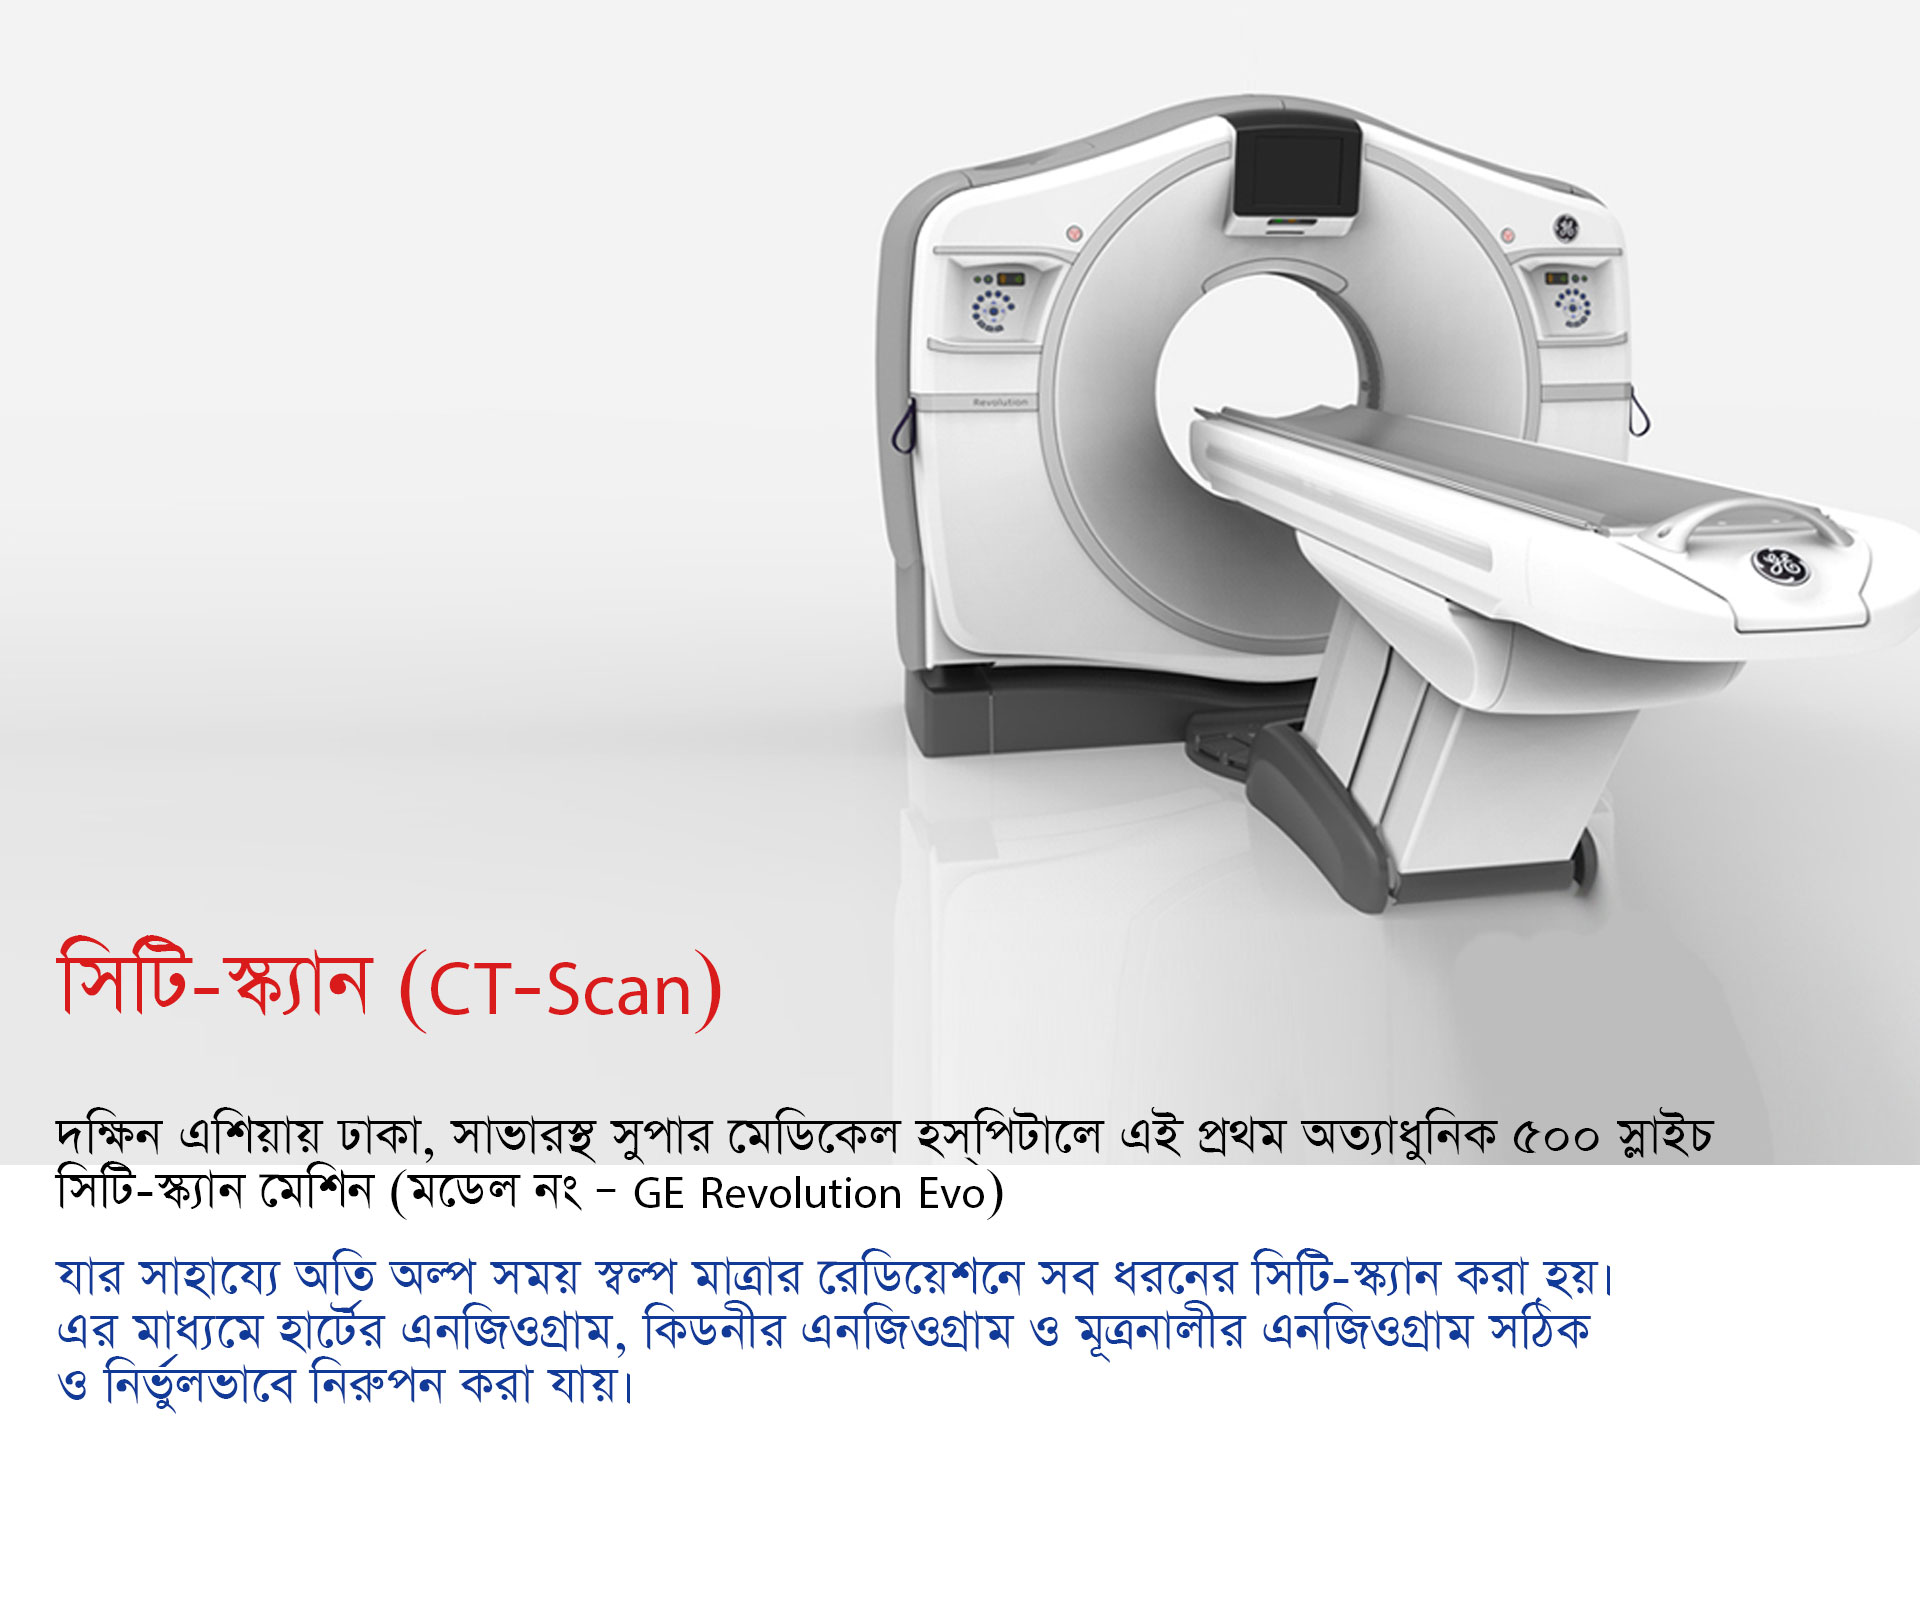 CT-Scan Machine